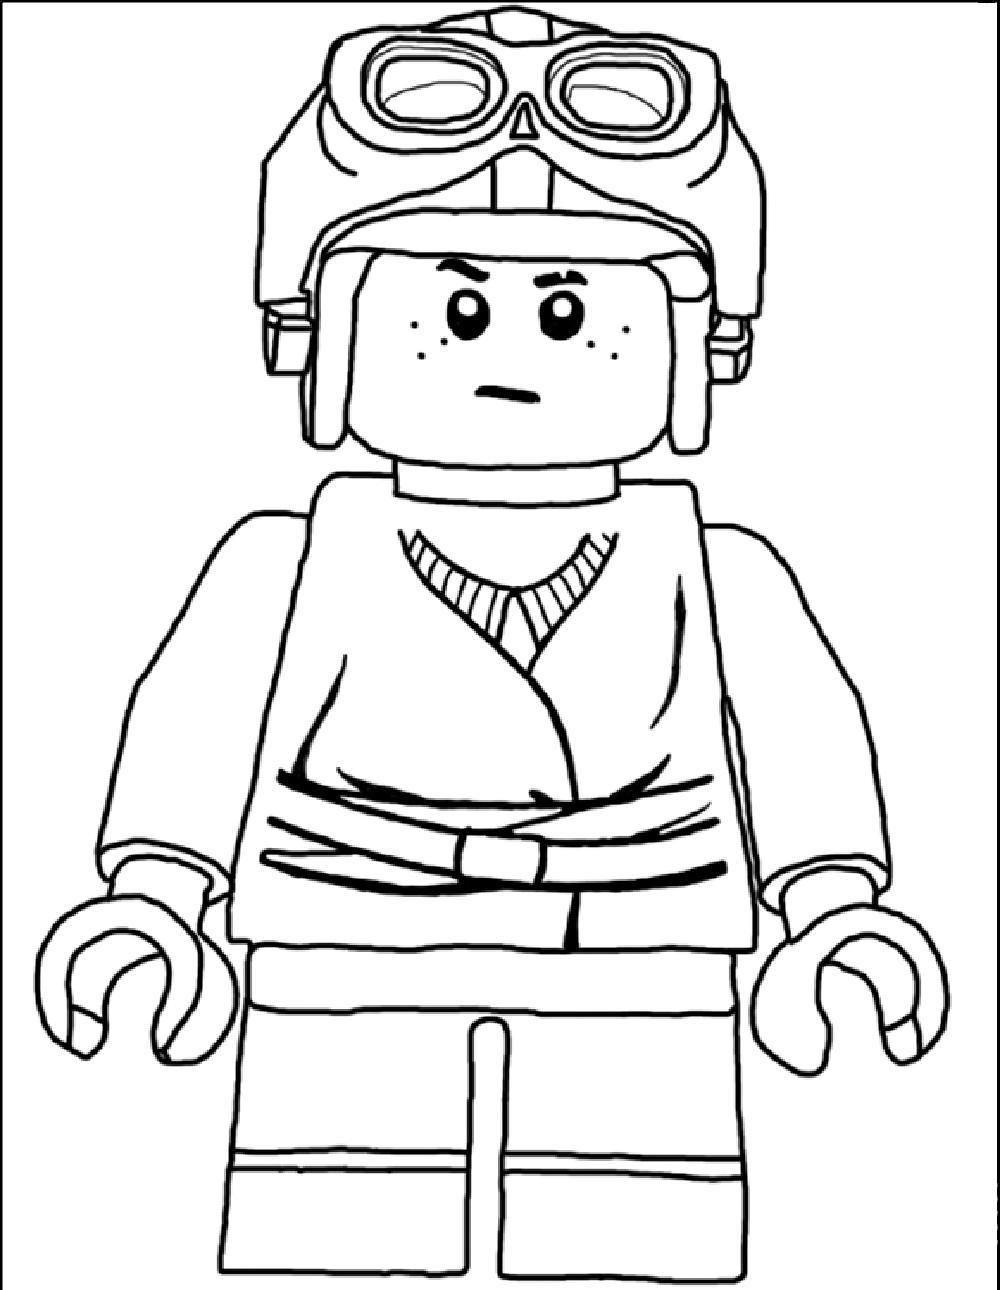 Colouring sheets lego - Star Wars Lego Coloring Page